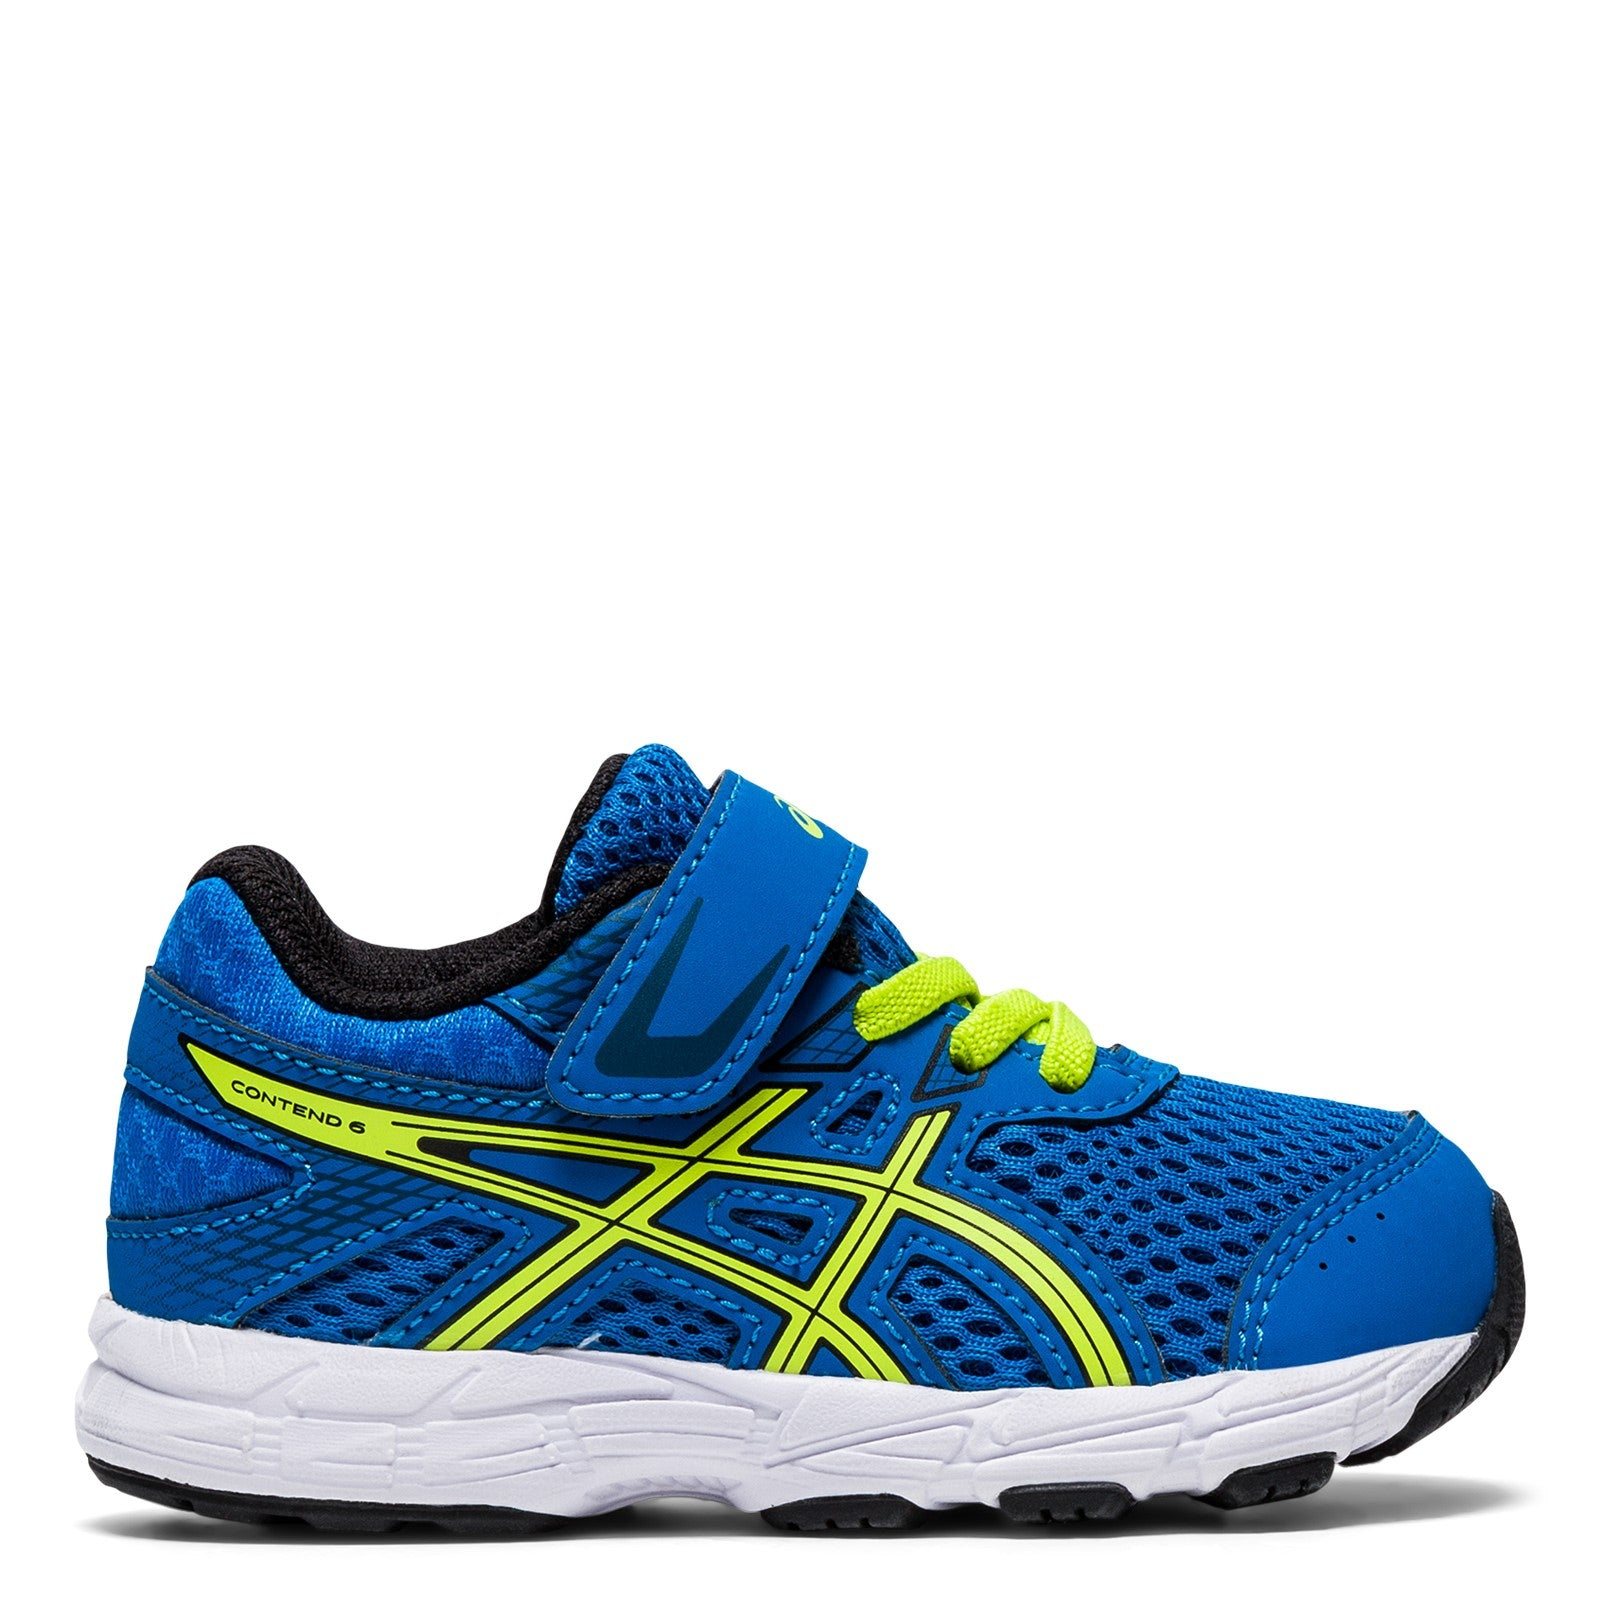 Asics Kids Contend 6 TS Toddler A/C Sneaker - Tuna Blue/Black